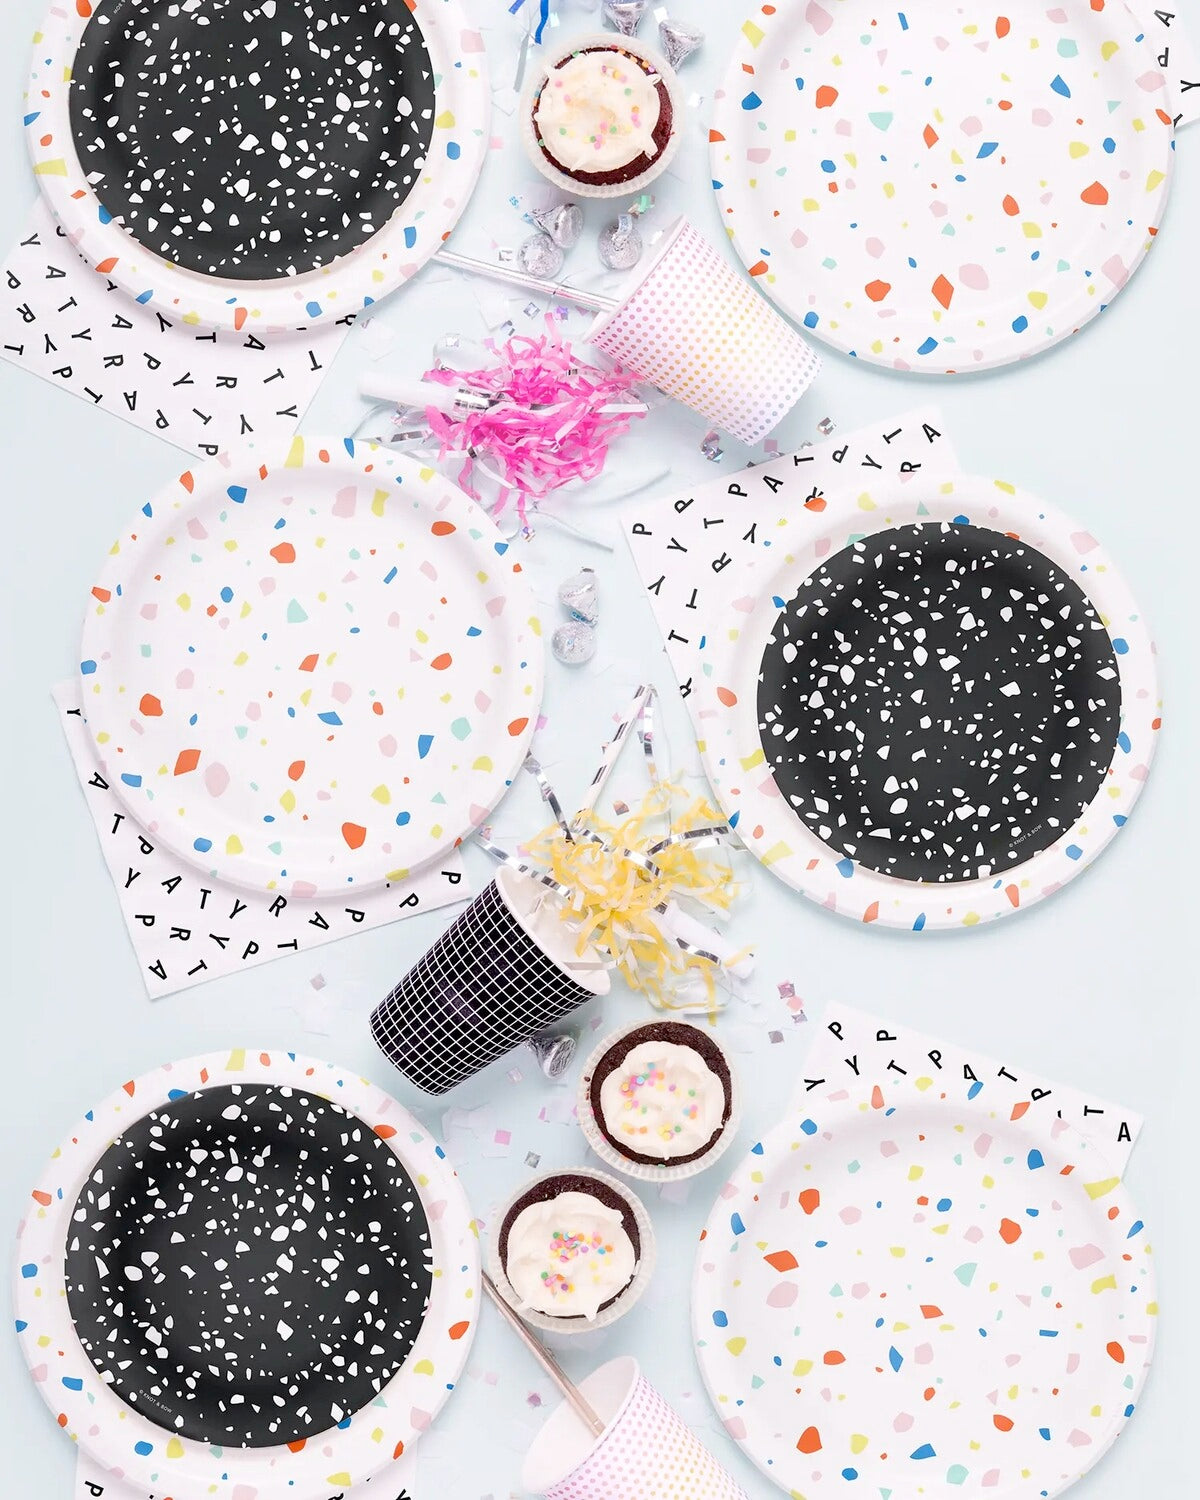 Party Plate Small: Black Chip